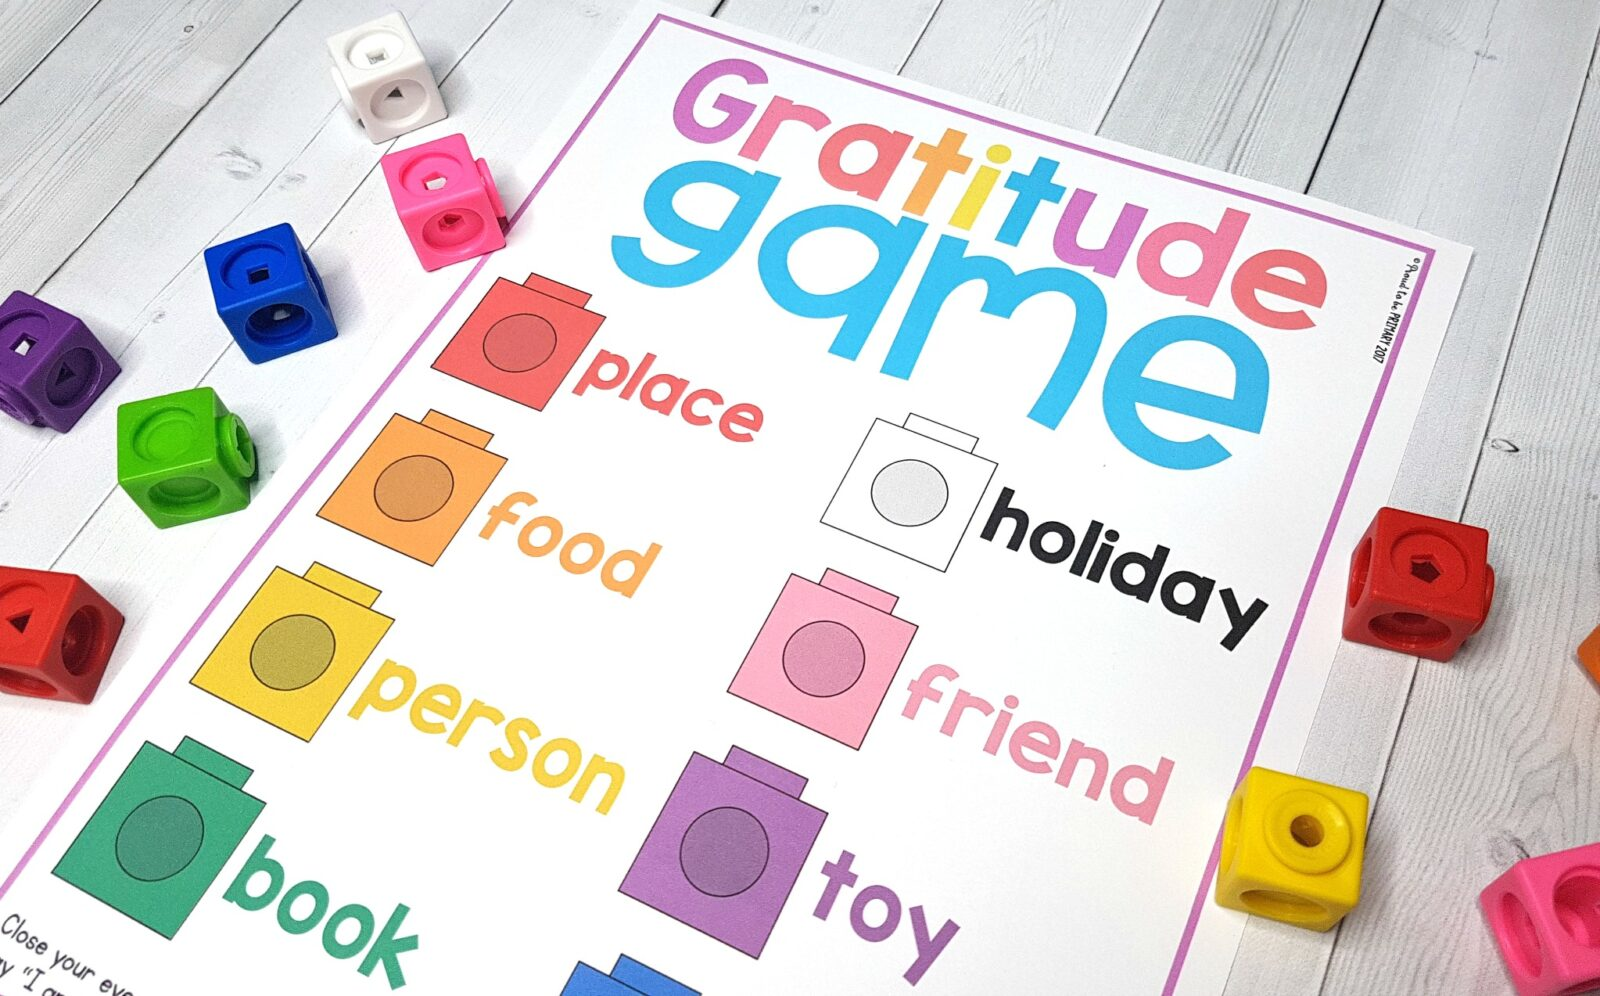 teaching respect - gratitude game printable with colored snap cubes on table